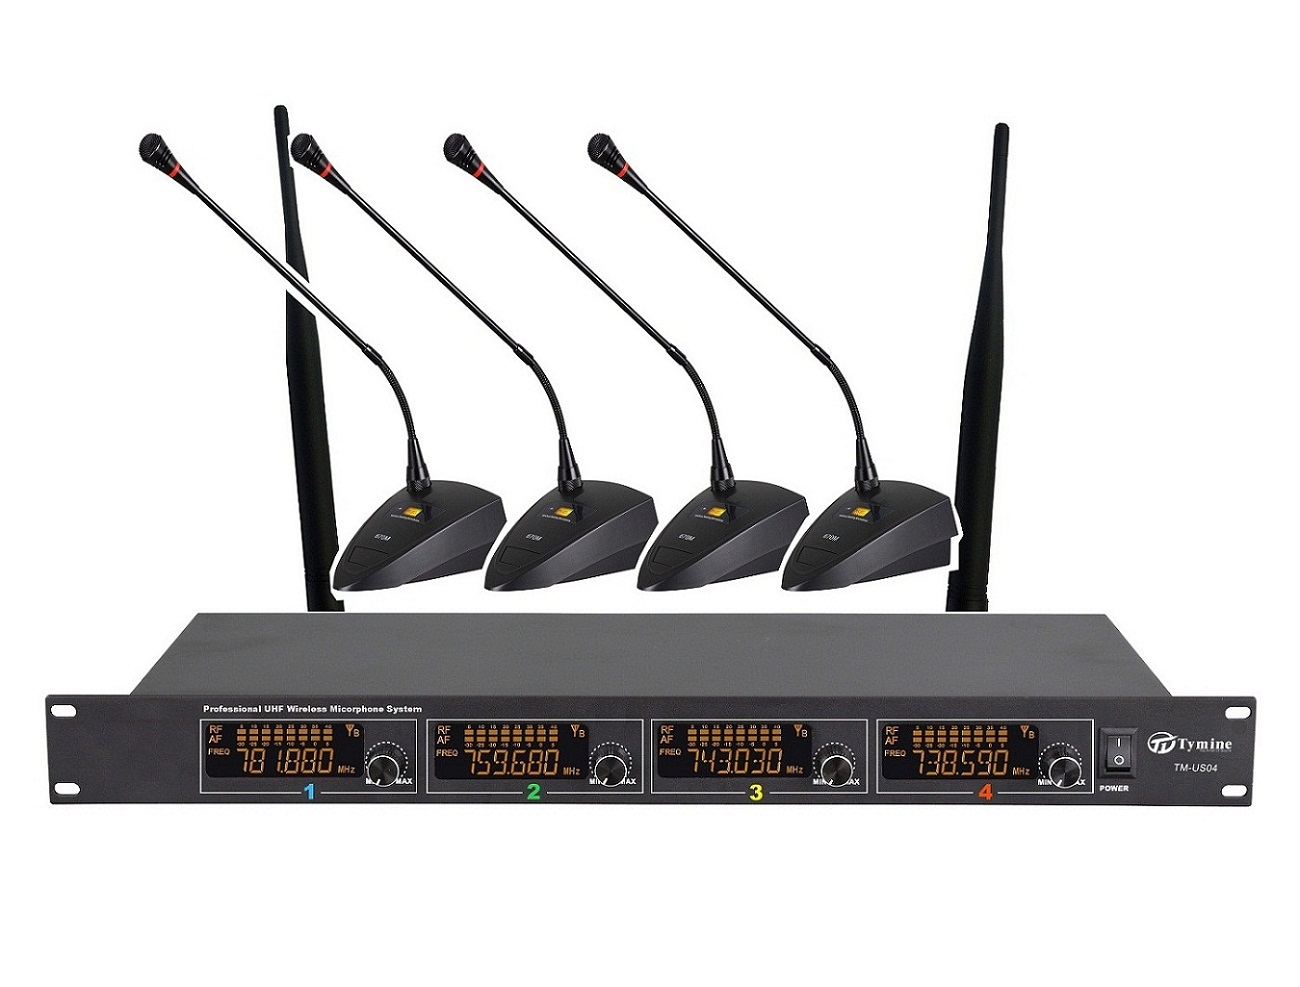 UHF Four Channel Conference wireless microphone